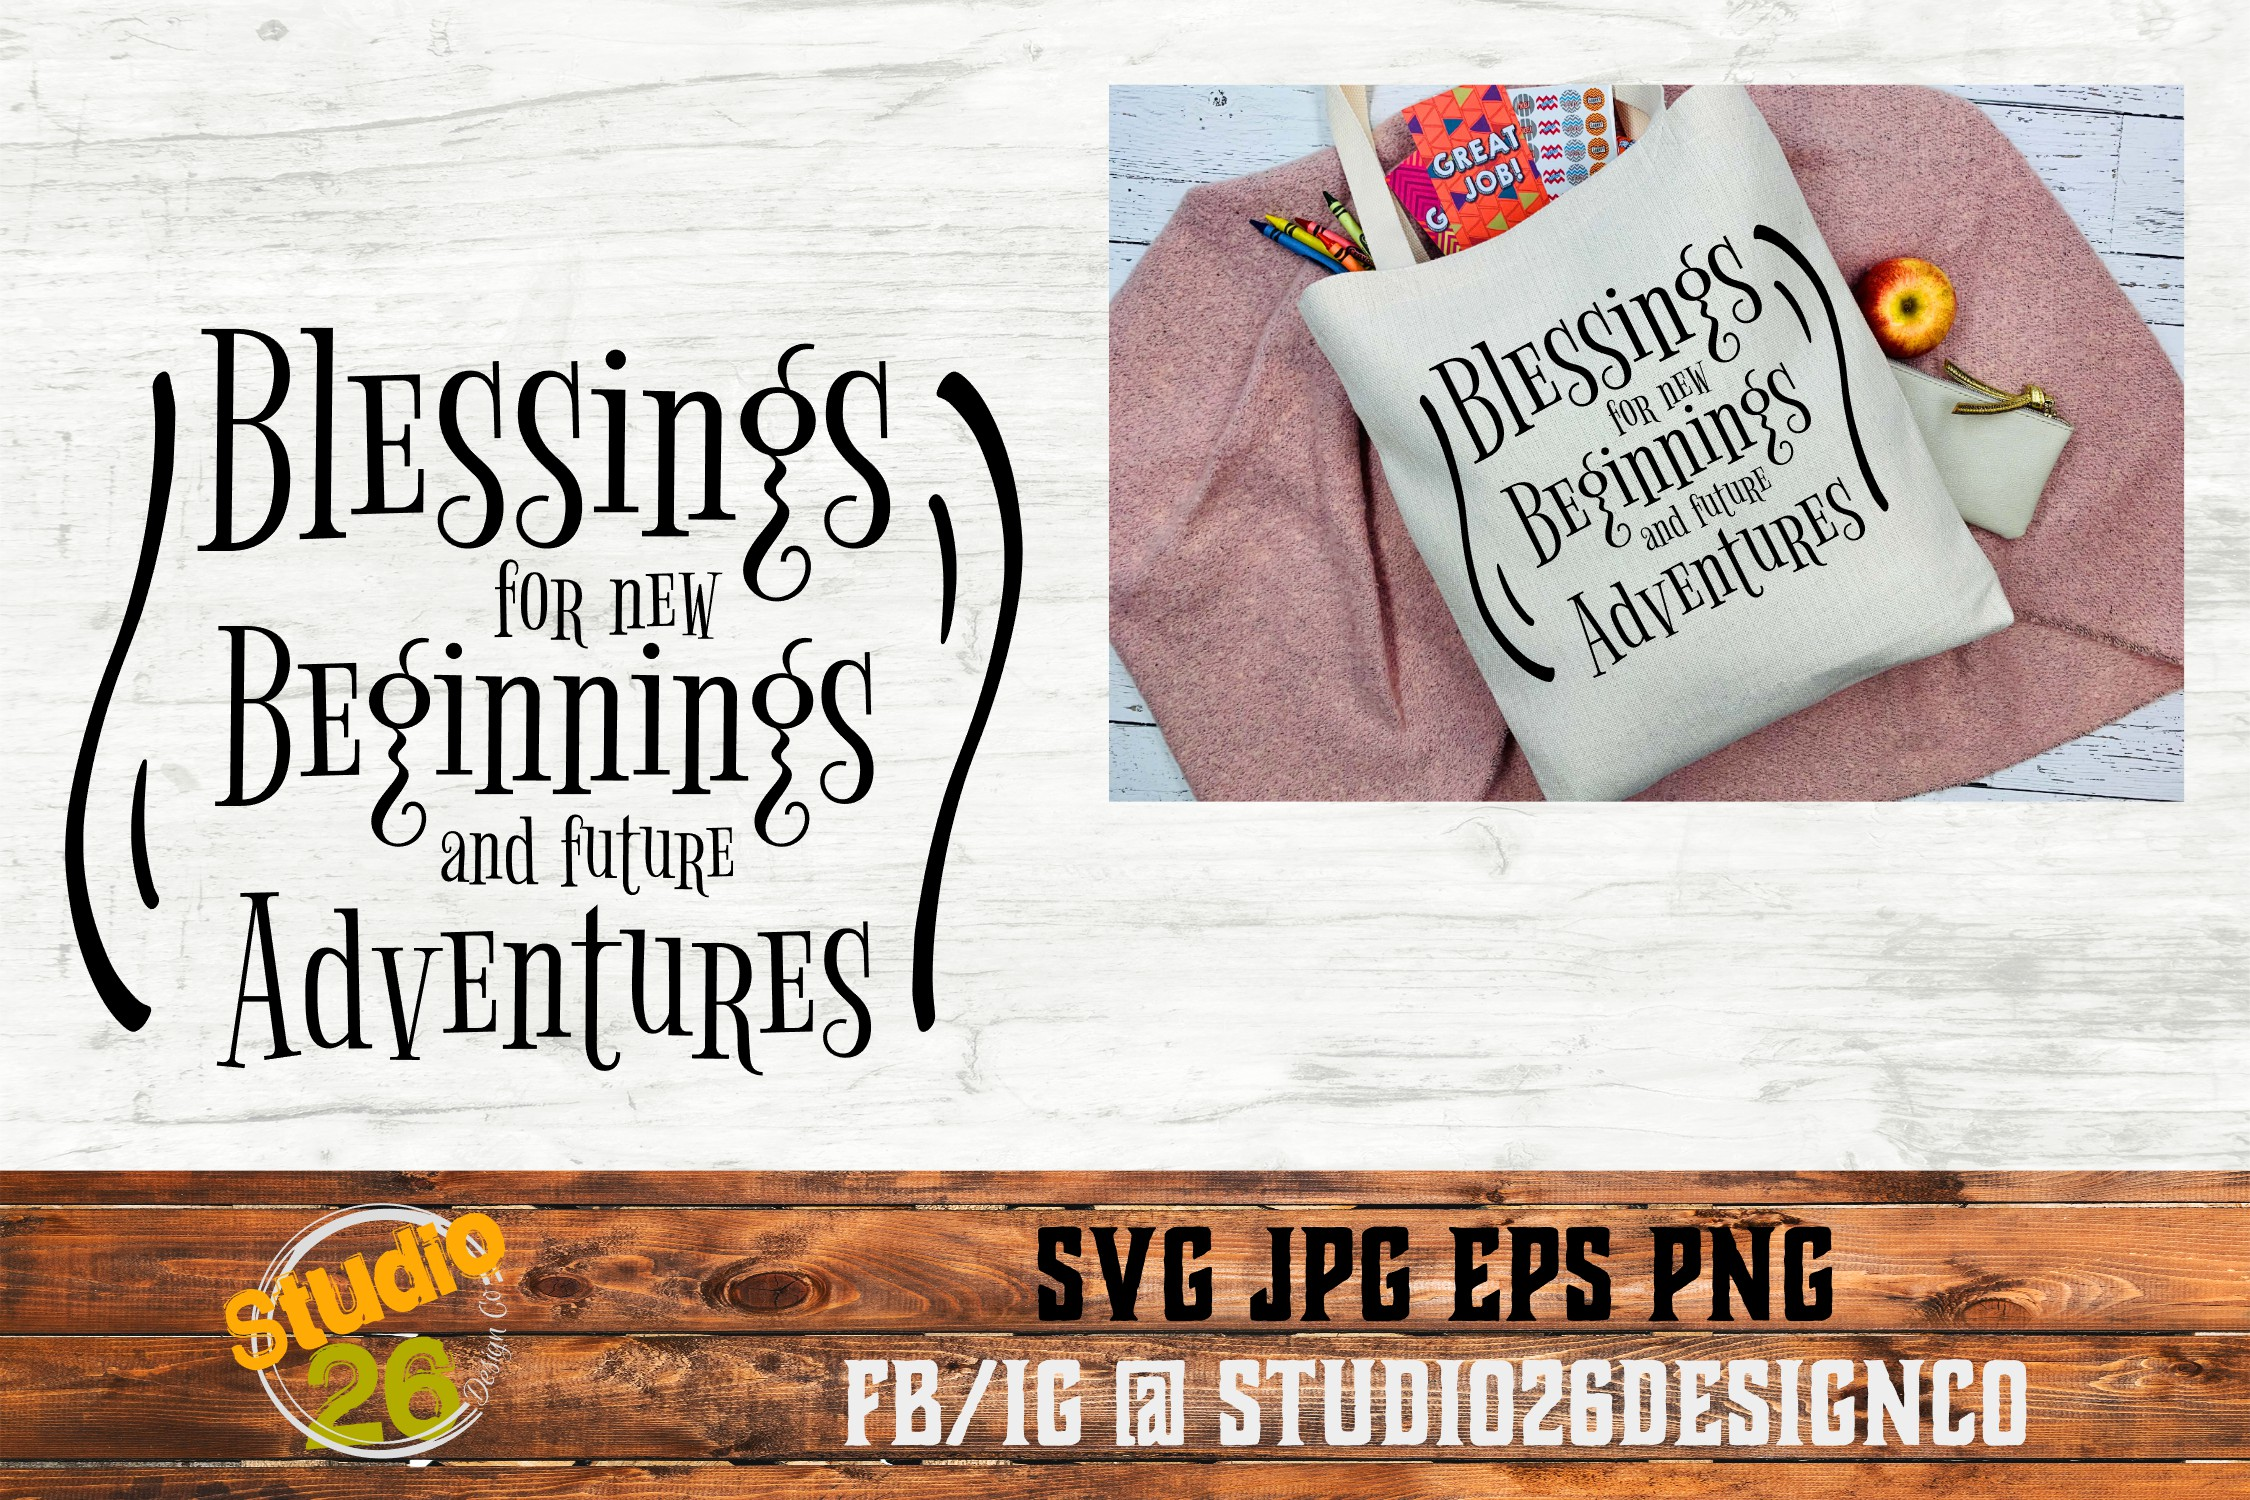 Blessings for new beginnings - SVG EPS PNG example image 2